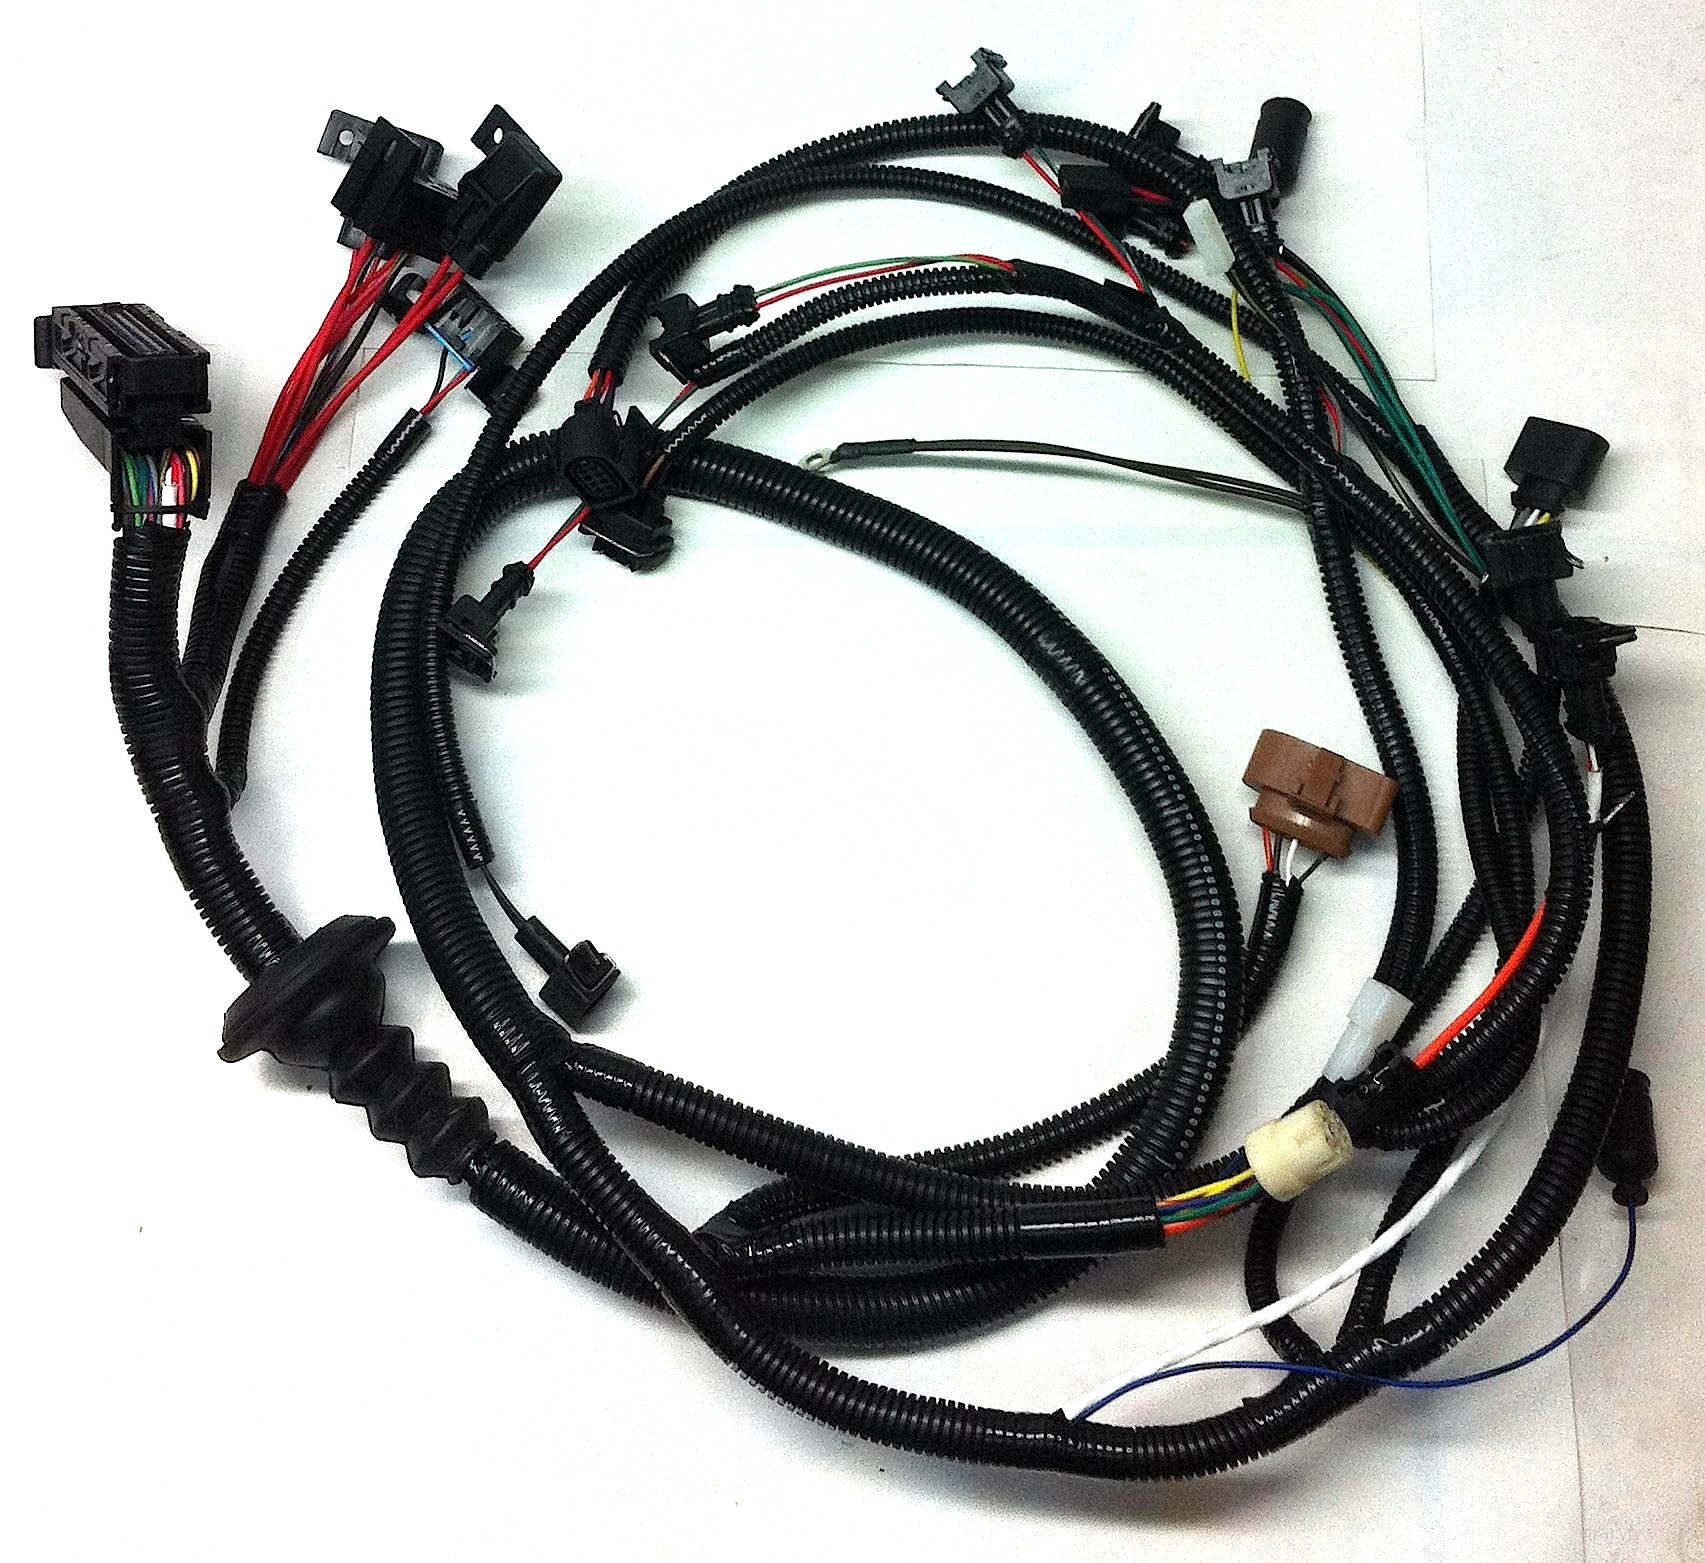 2LR / Tiico Conversion Wiring Harness - Foreign Auto & Supply, Inc.- Foreign Auto & Supply, Inc.